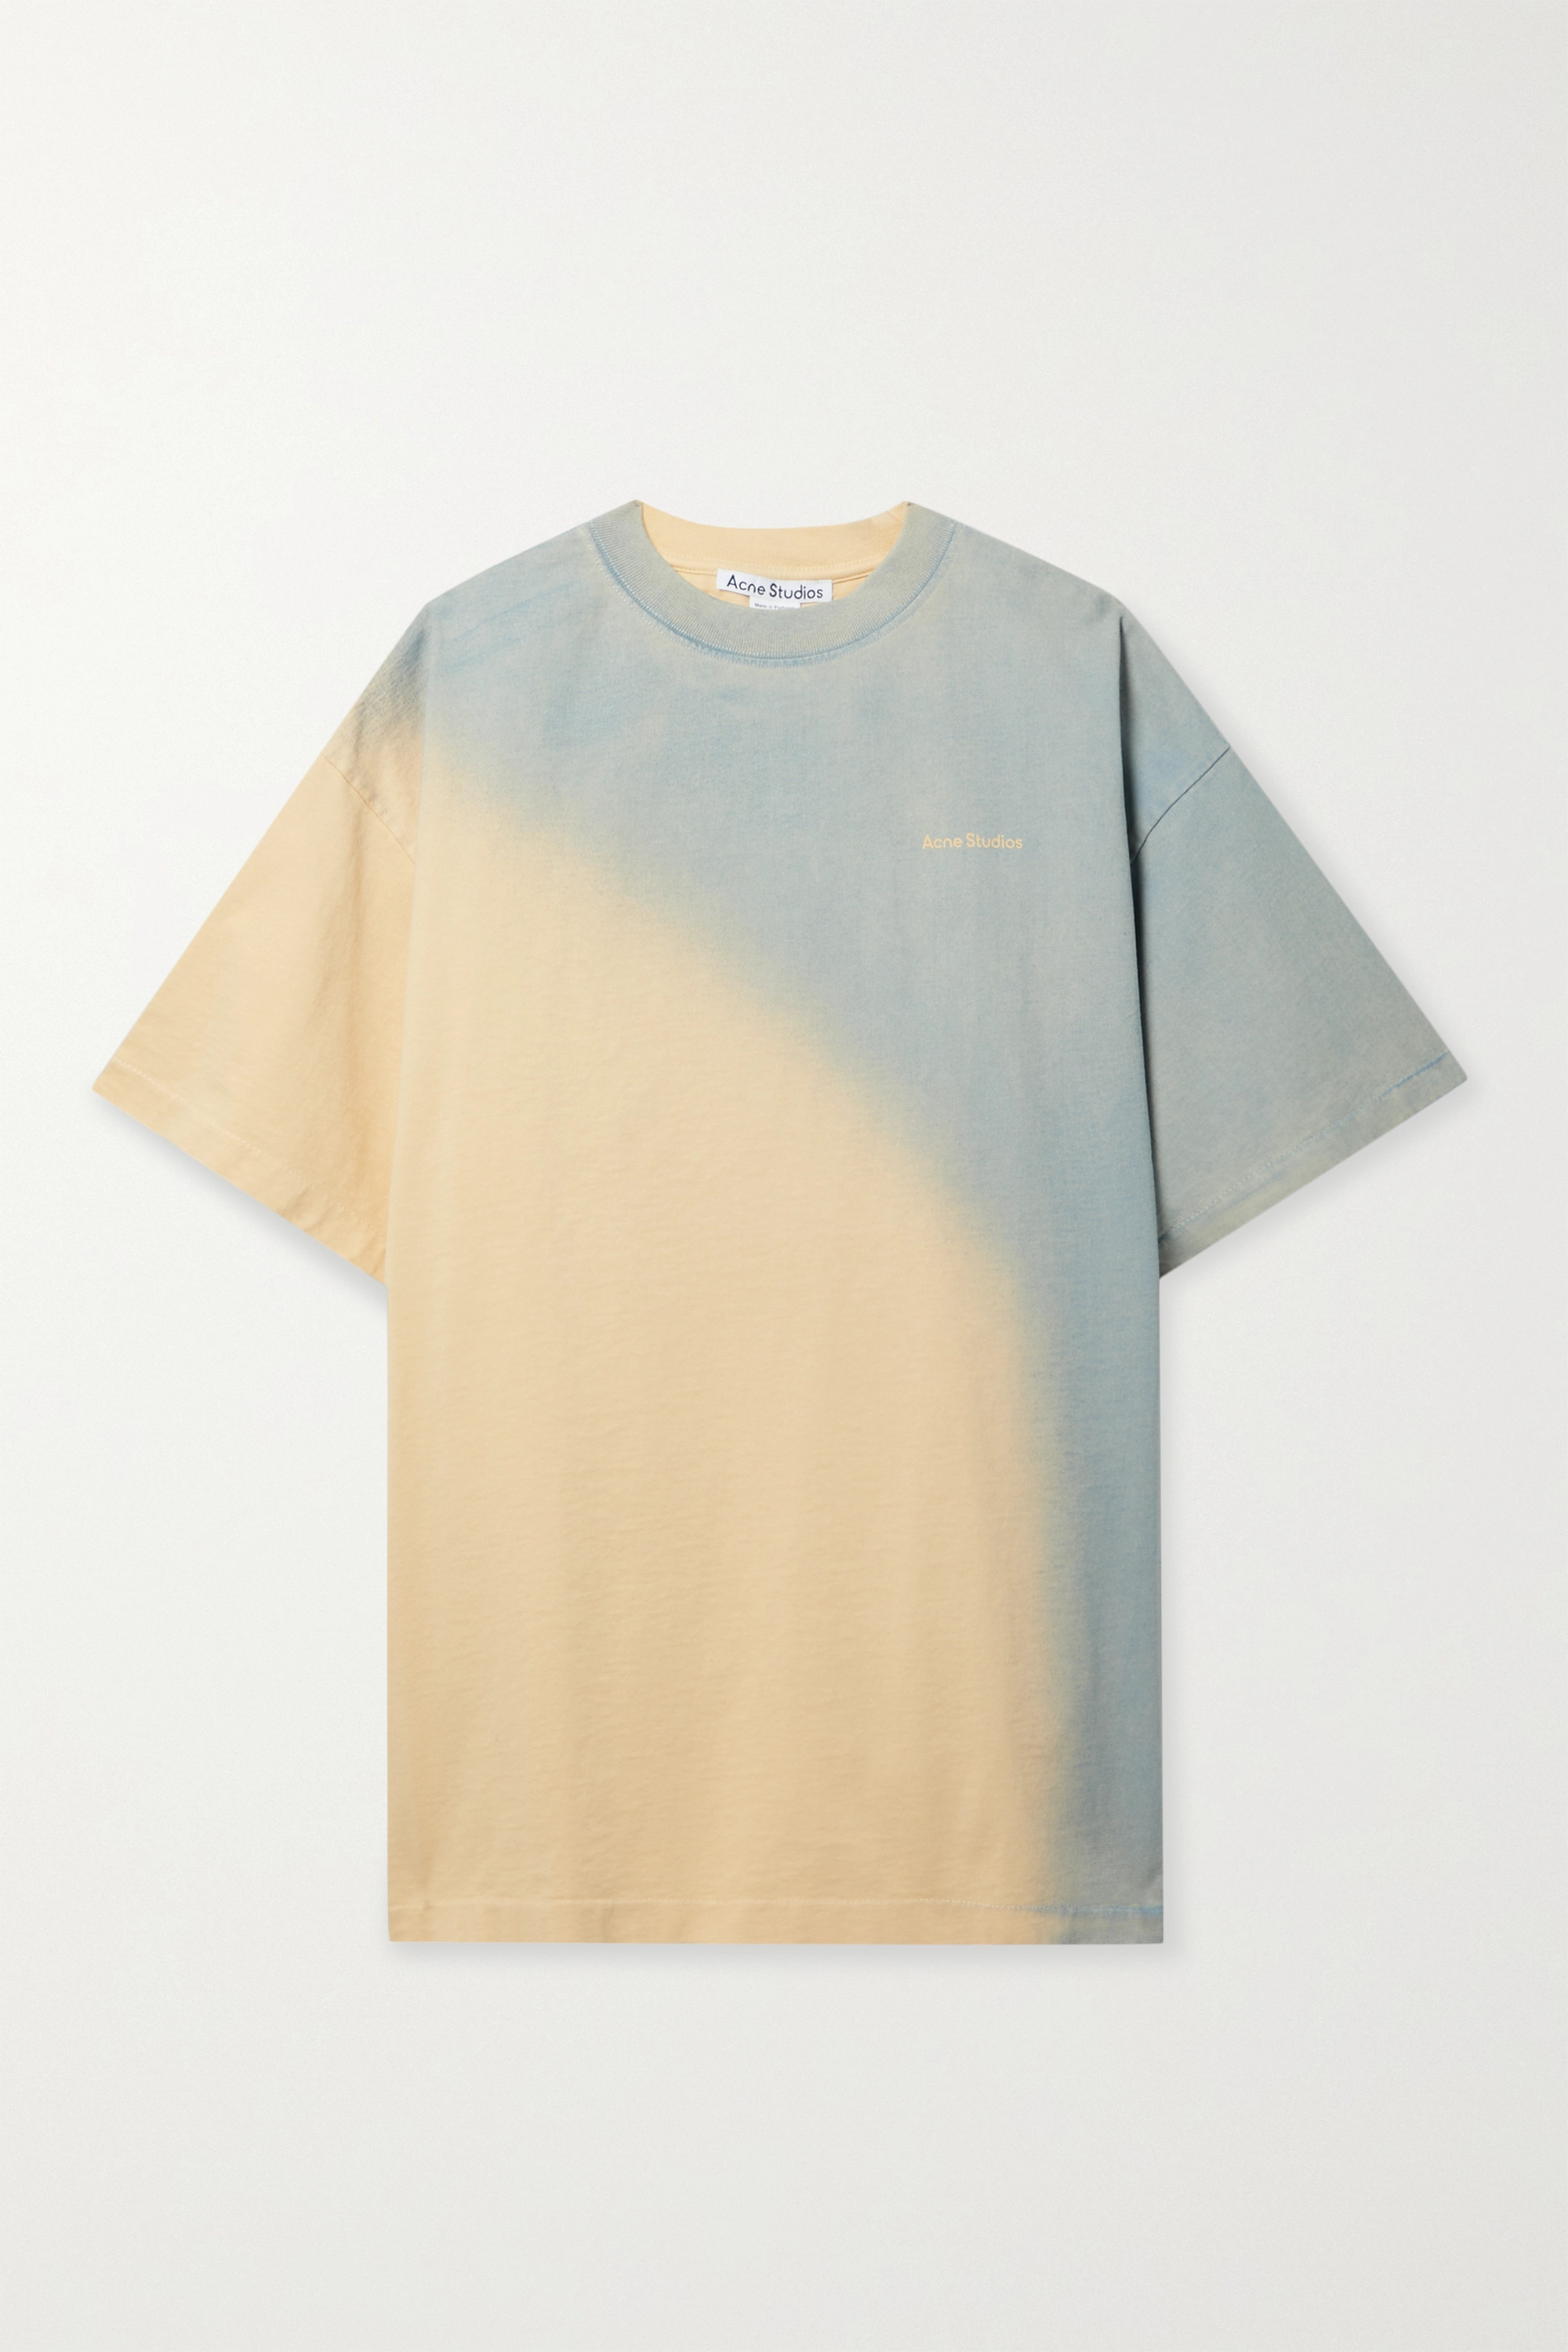 organic cotton for the summer yellow and blue NET